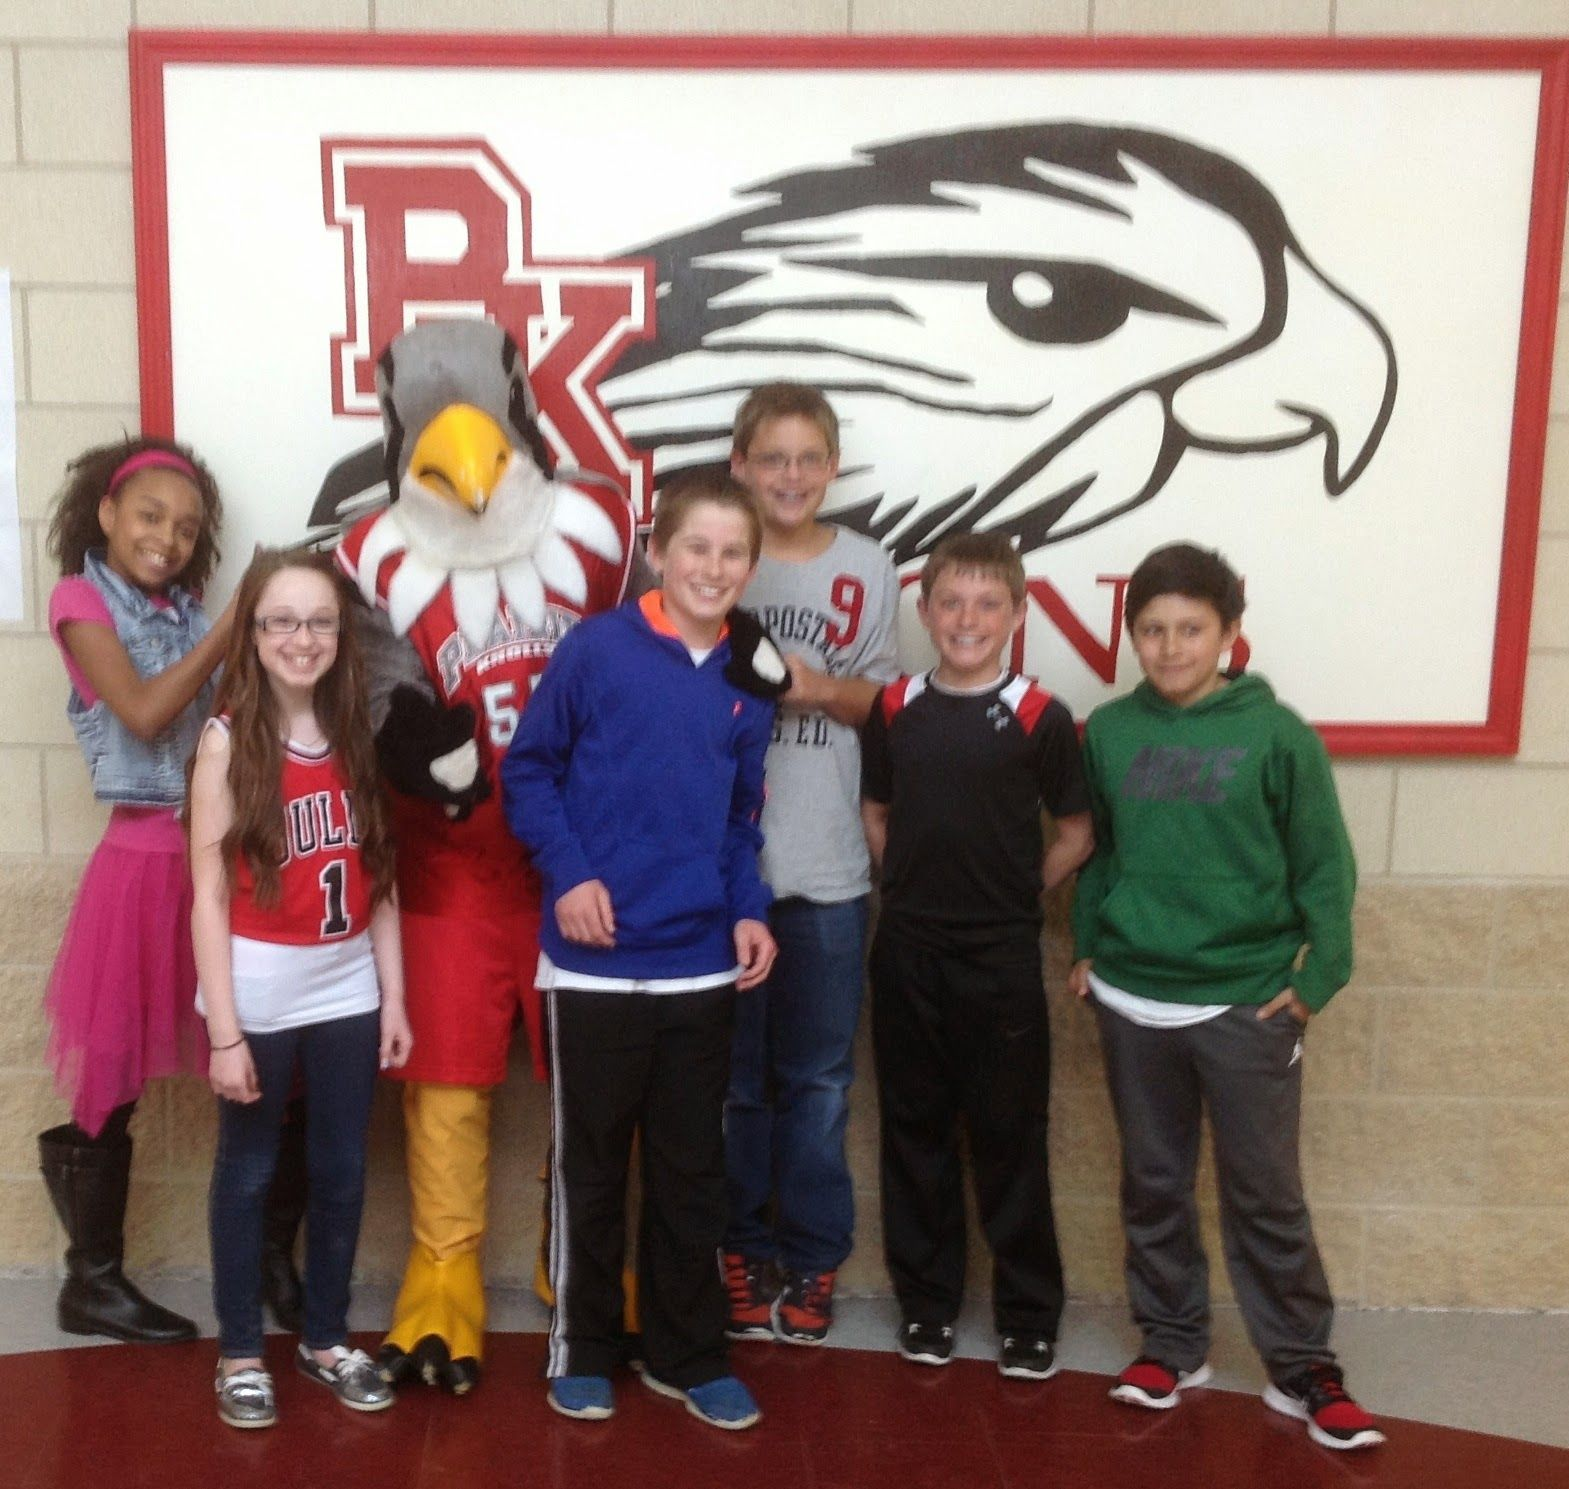 Central 301 fifth graders glimpse middle school life